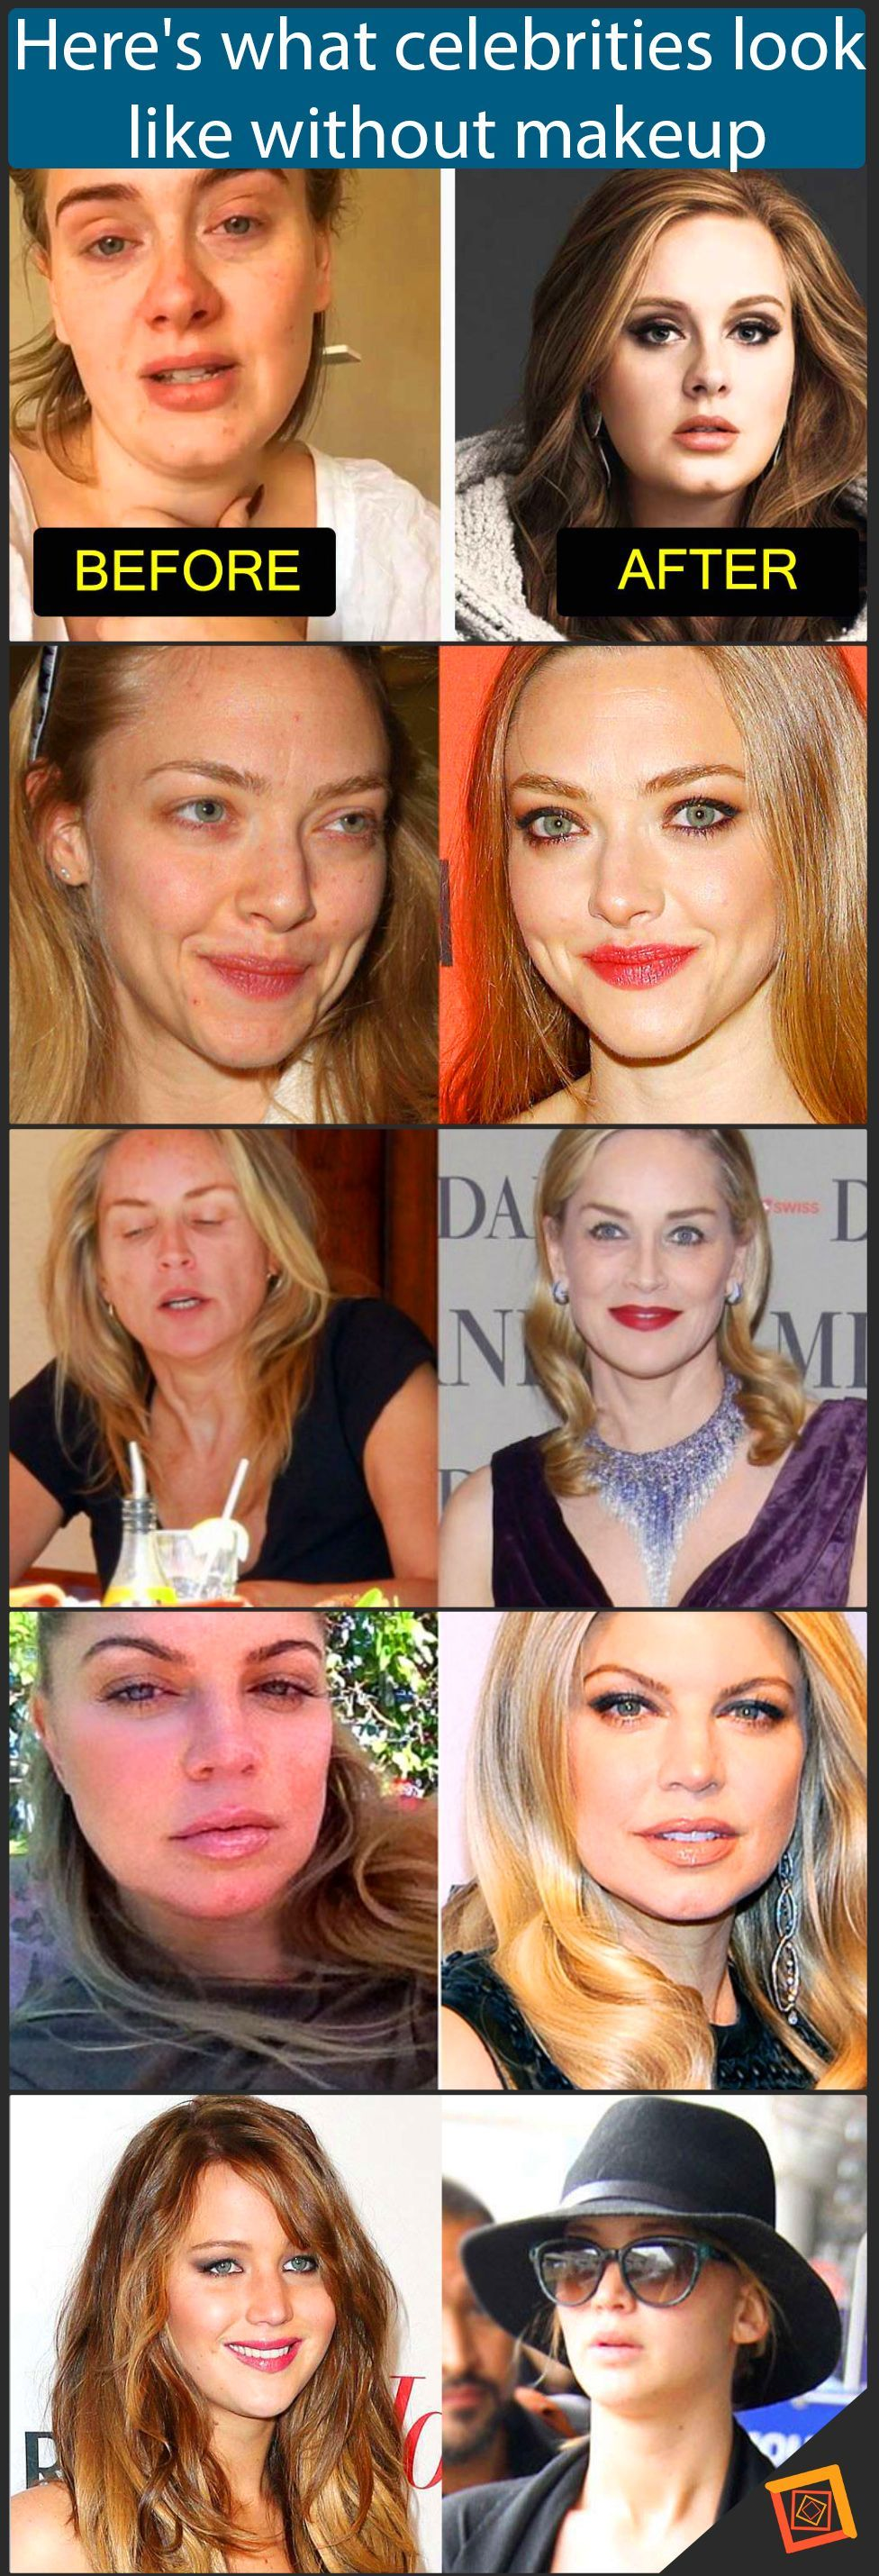 hollywood celebrities without makeup before and after - wavy